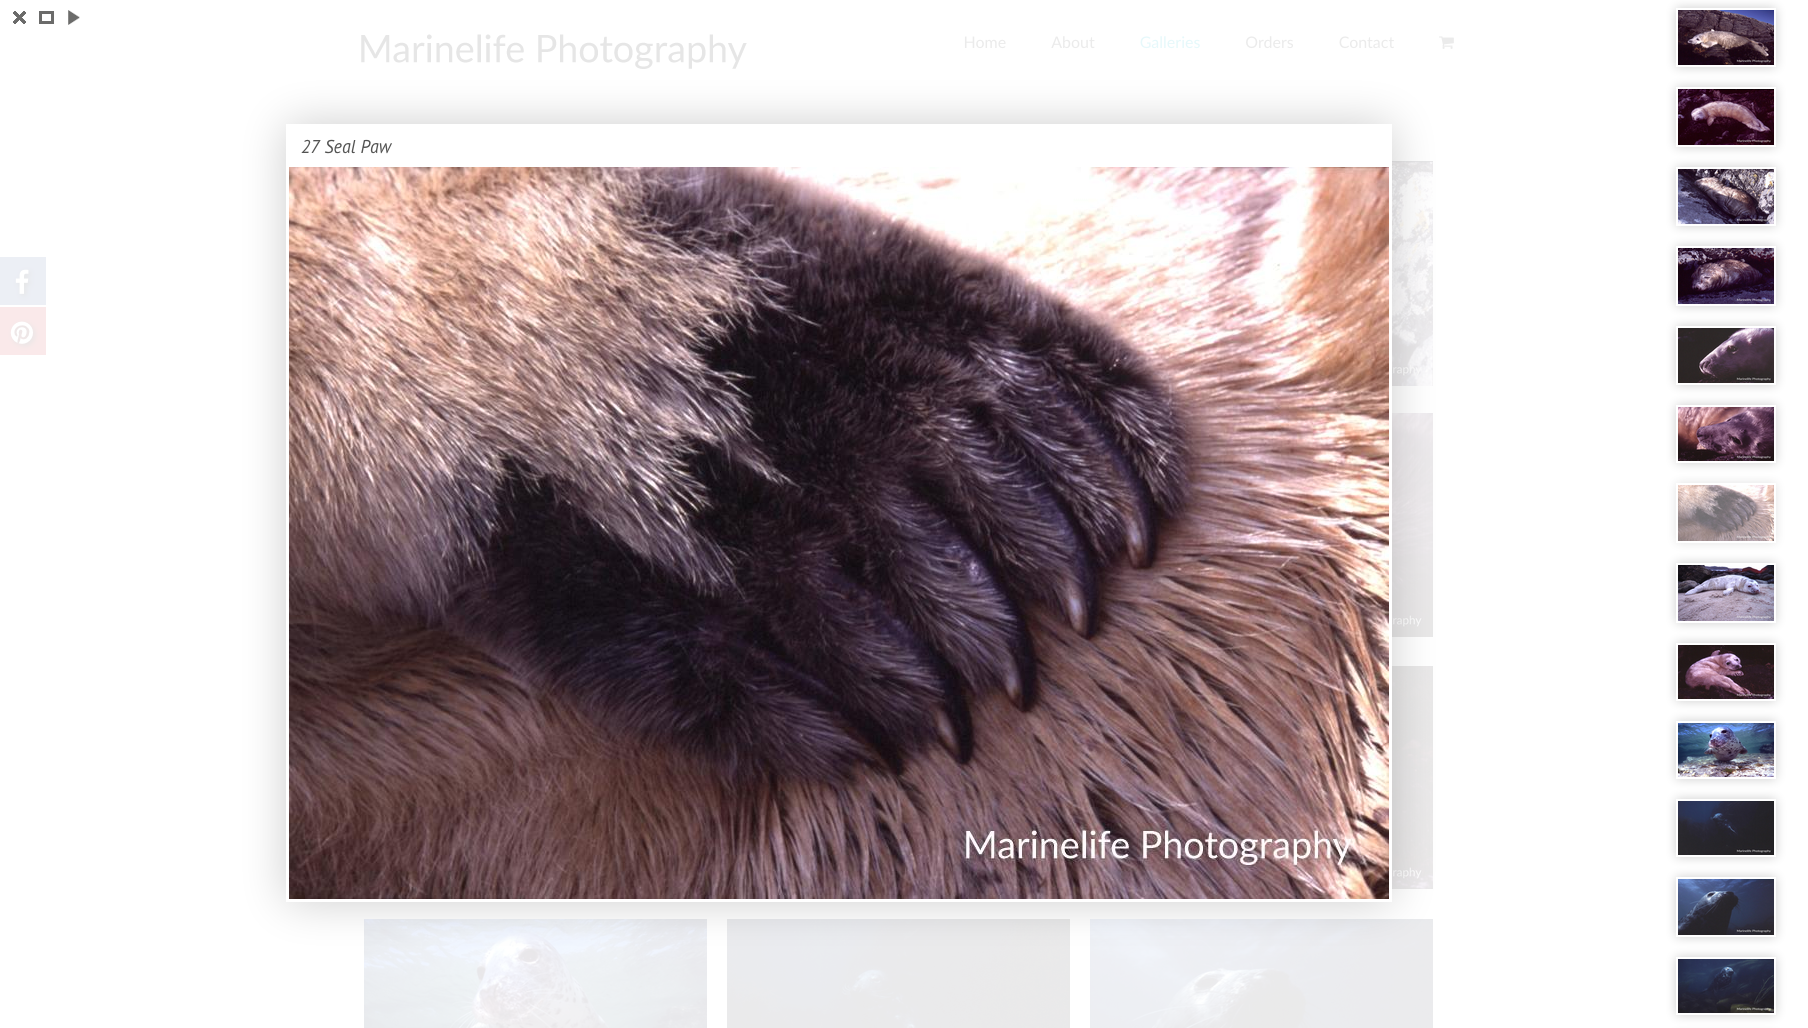 Marinelife Photography seal paw gallery image - web design by markp61.sg-host.com